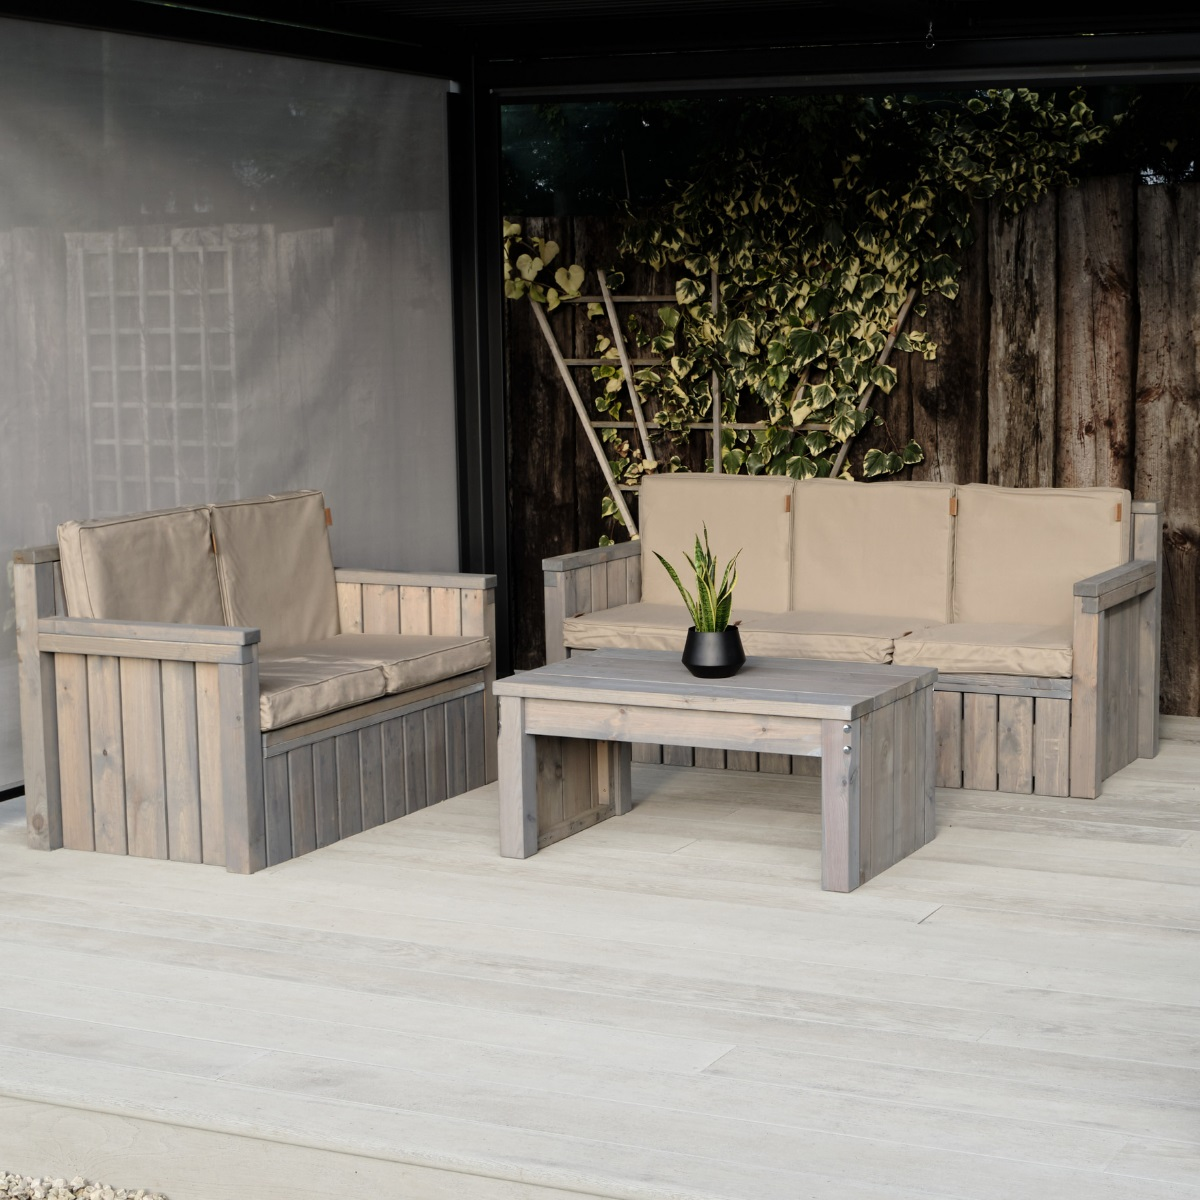 An outdoor wooden sofa set includes a 2 seater, 3 seater sofa and coffee table on a deck